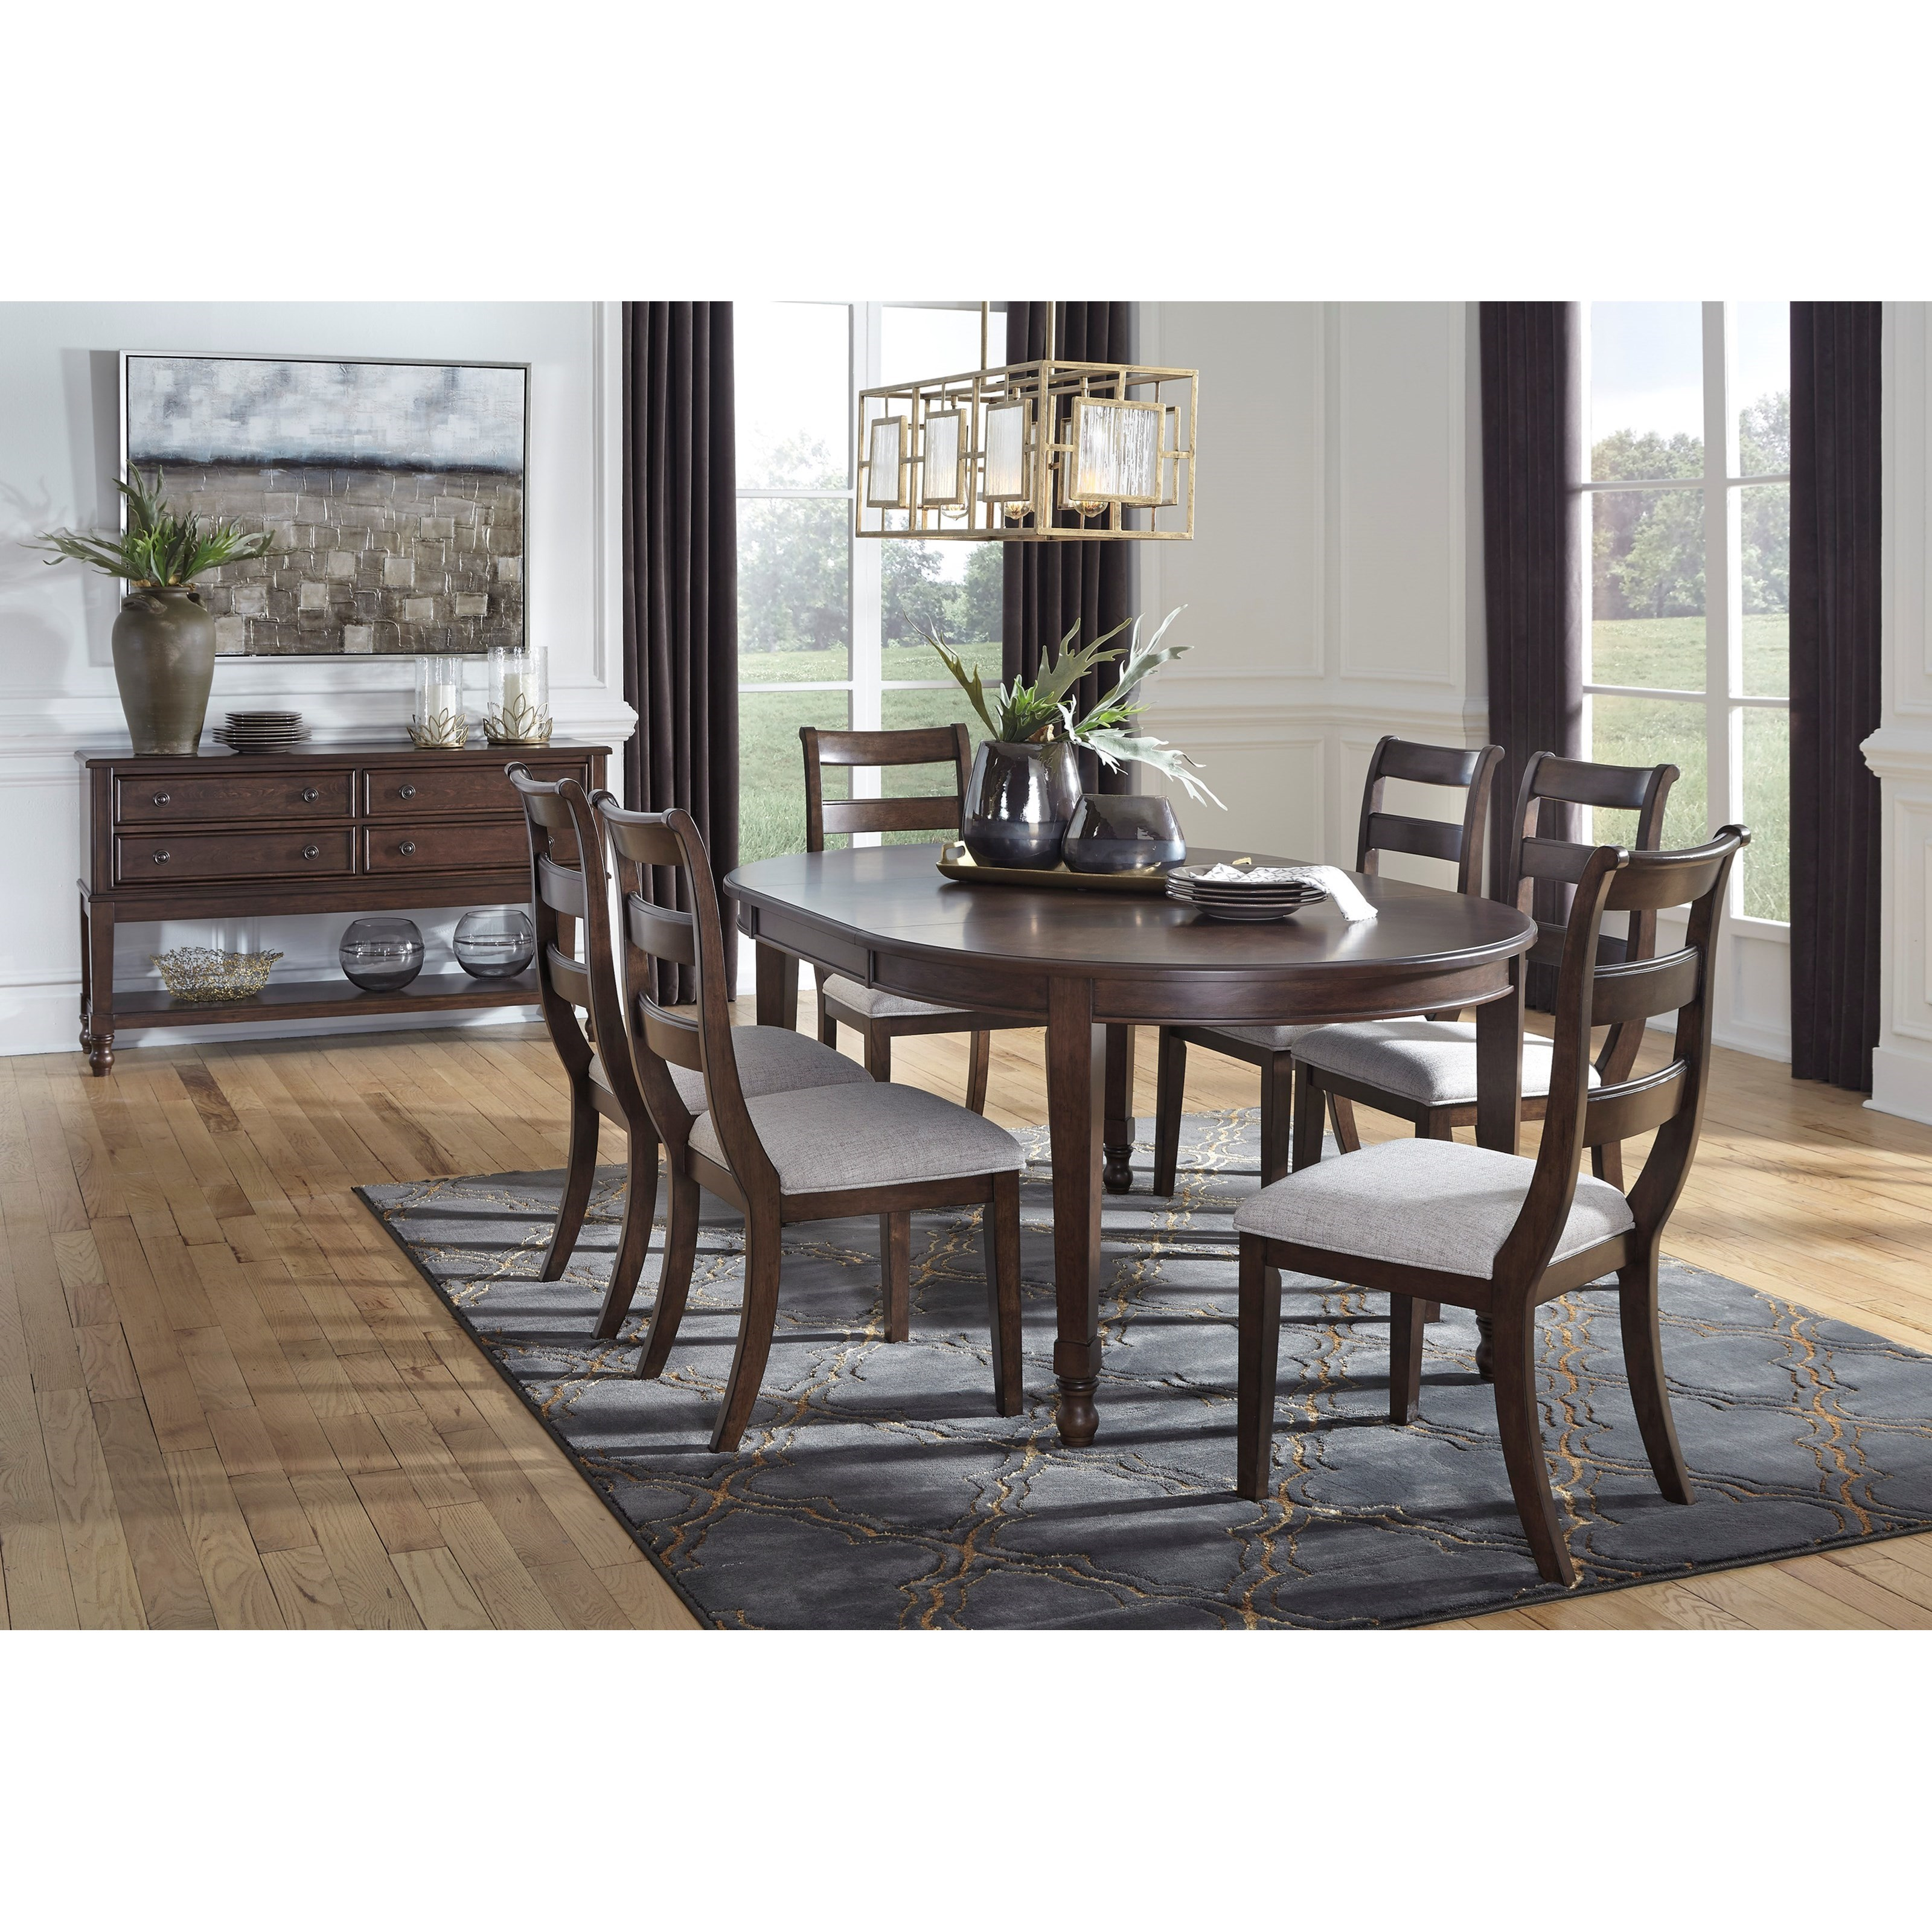 Adinton Formal Dining Room Group by Signature Design by Ashley at Pilgrim Furniture City